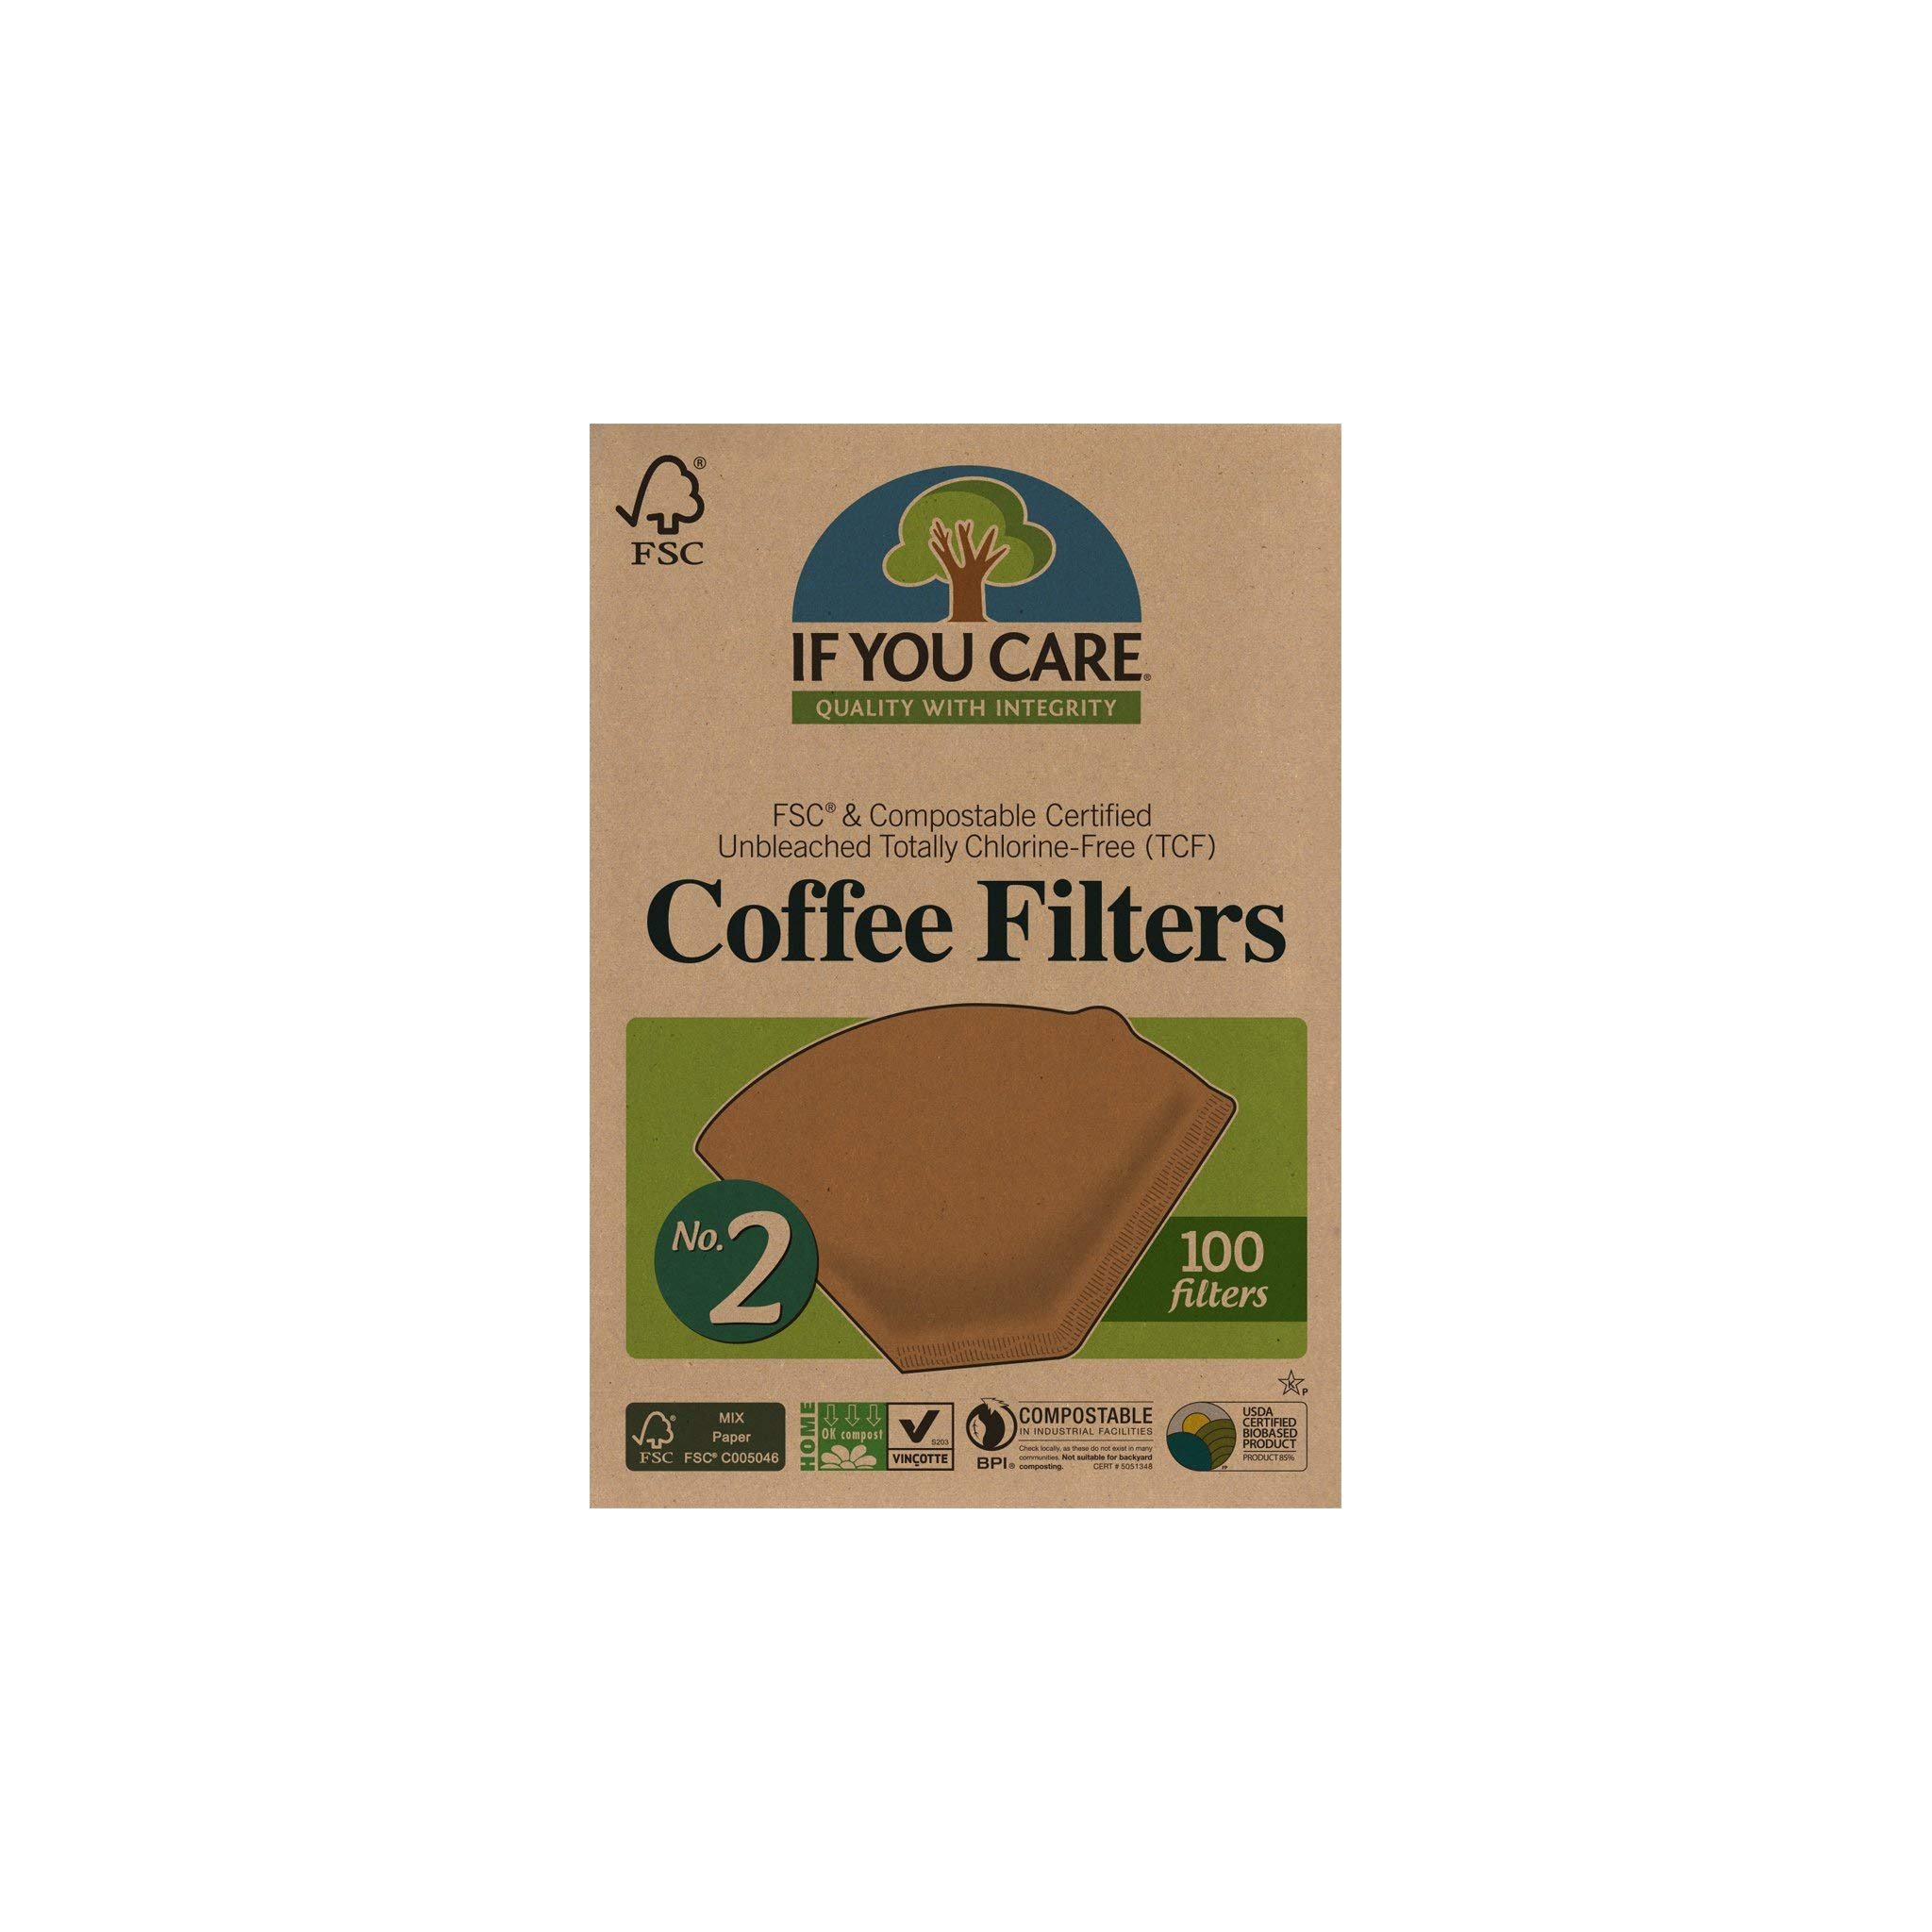 IF YOU CARE Coffee Filters, No. 2, 100-Count Boxes (Pack of 12) by If You Care